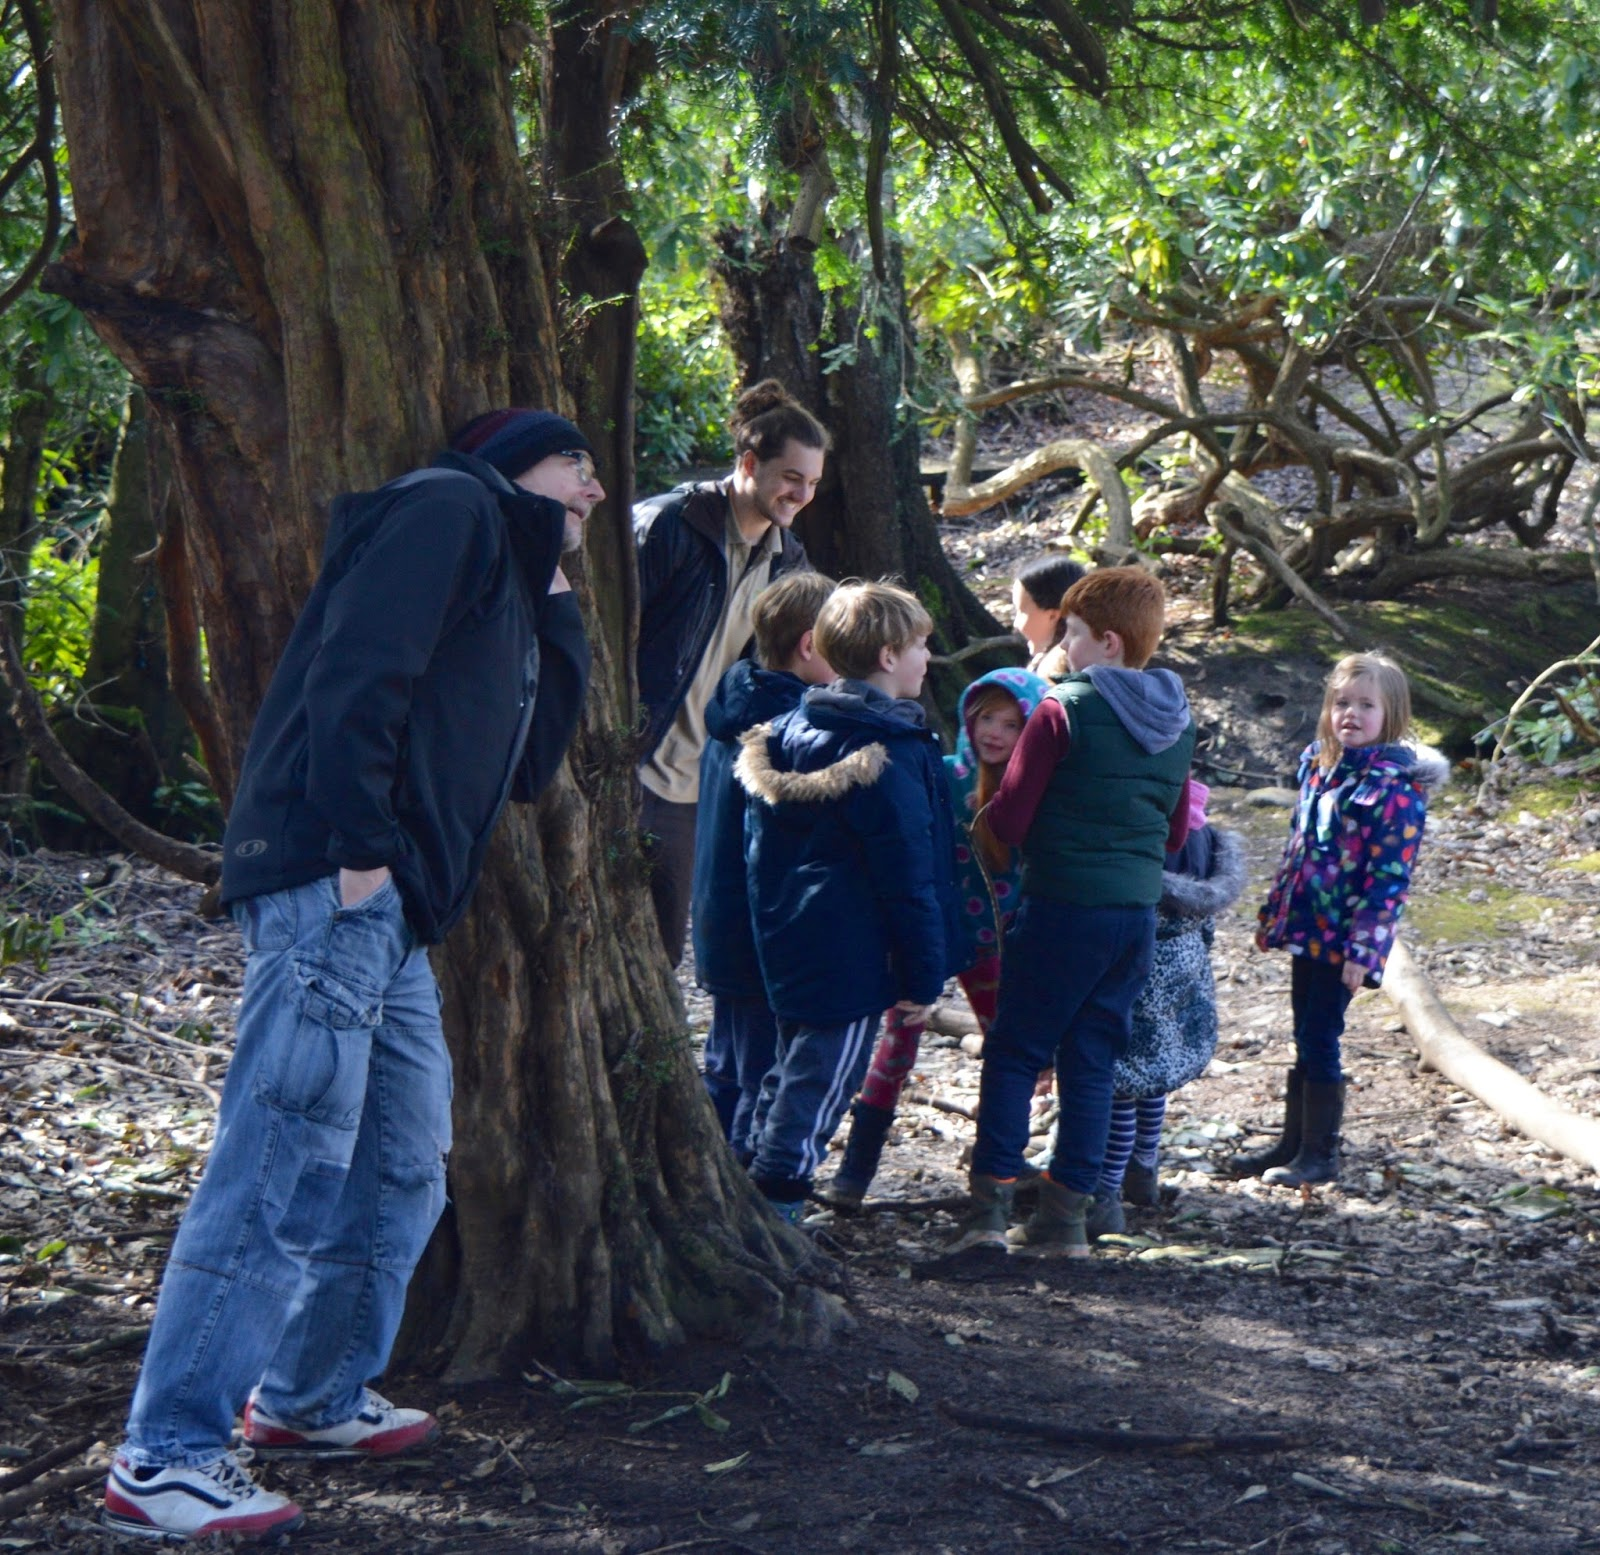 Beamish Wild | School Holiday Club & Activities in County Durham | North East England - den building huddle